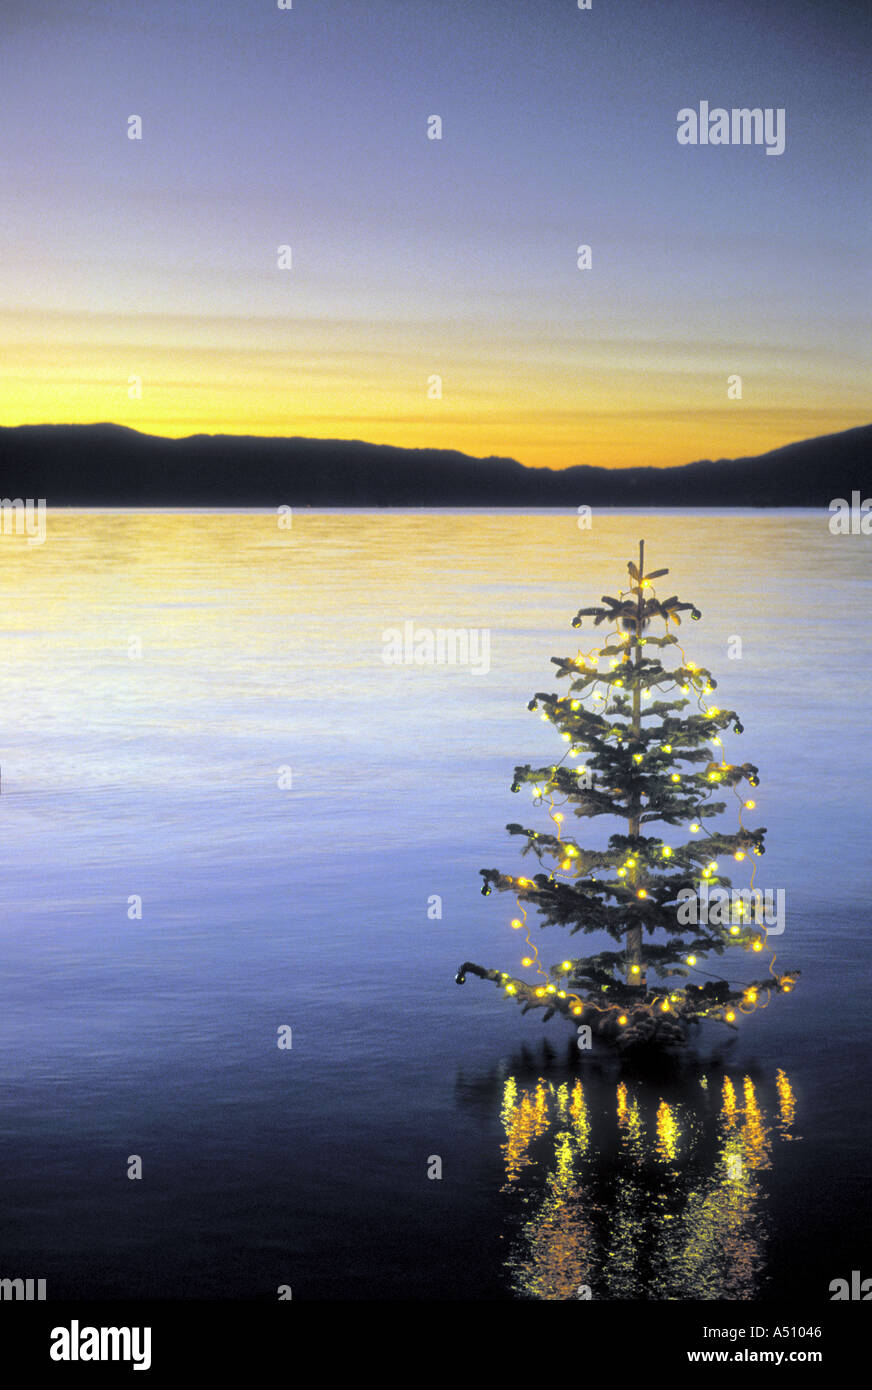 Christmas In Lake Tahoe.Christmas Tree In Calm Water Decorated With Lights Lake